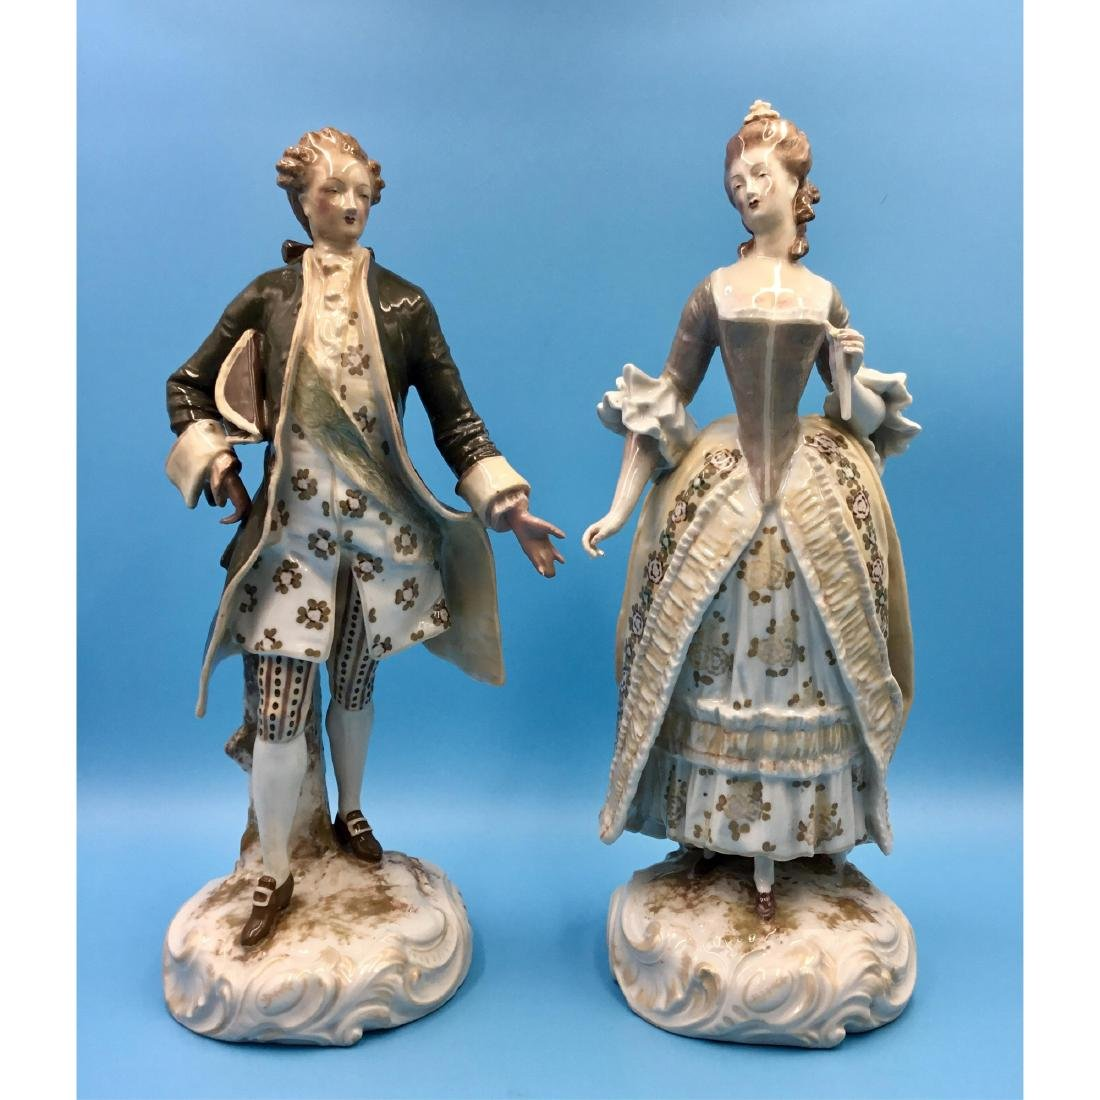 PAIR FRENCH R. BLOCH PORCELAIN FIGURINES